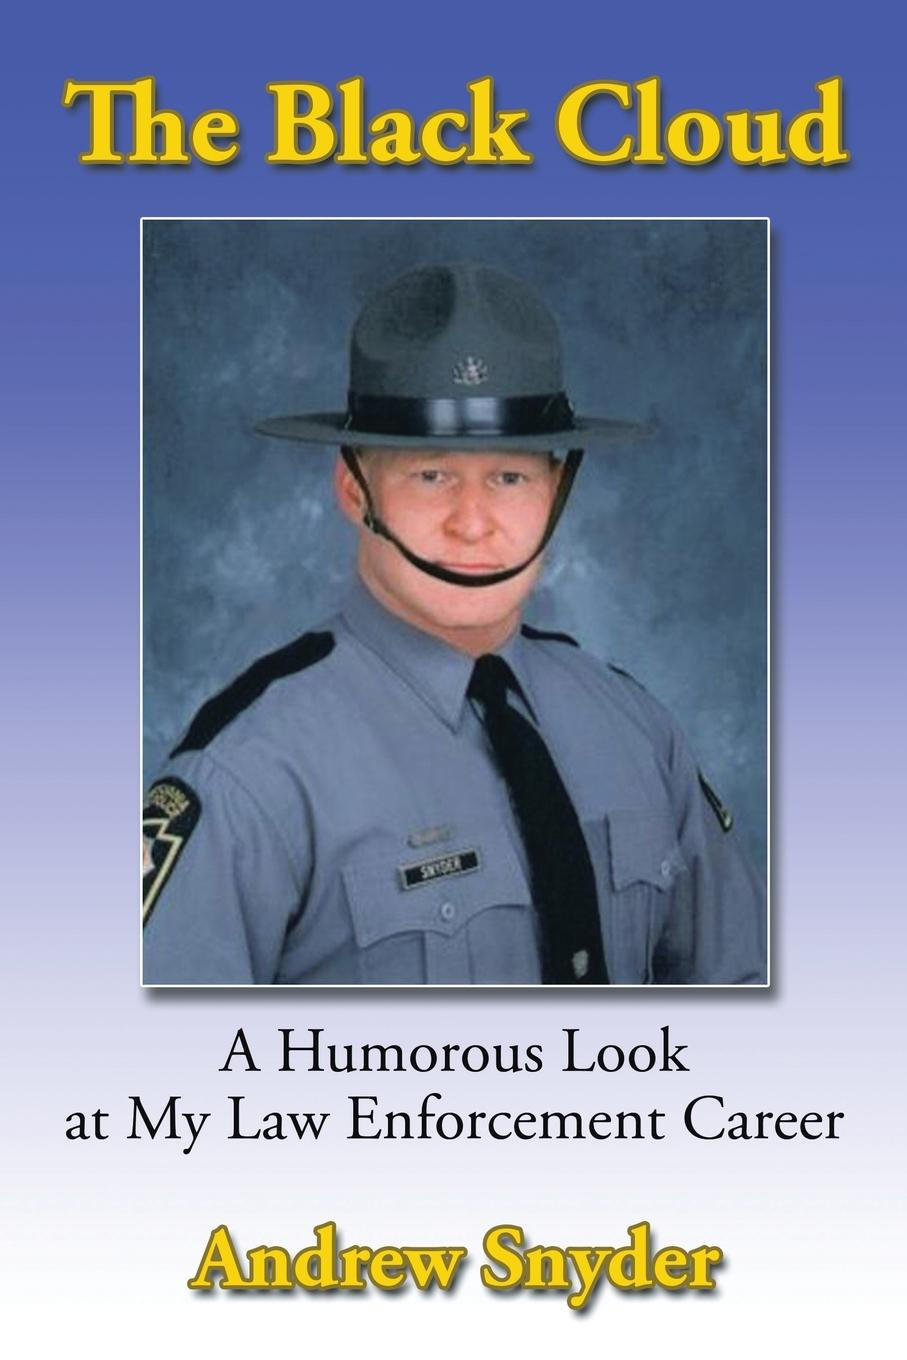 лучшая цена Andrew Snyder The Black Cloud. A Humorous Look at My Law Enforcement Career